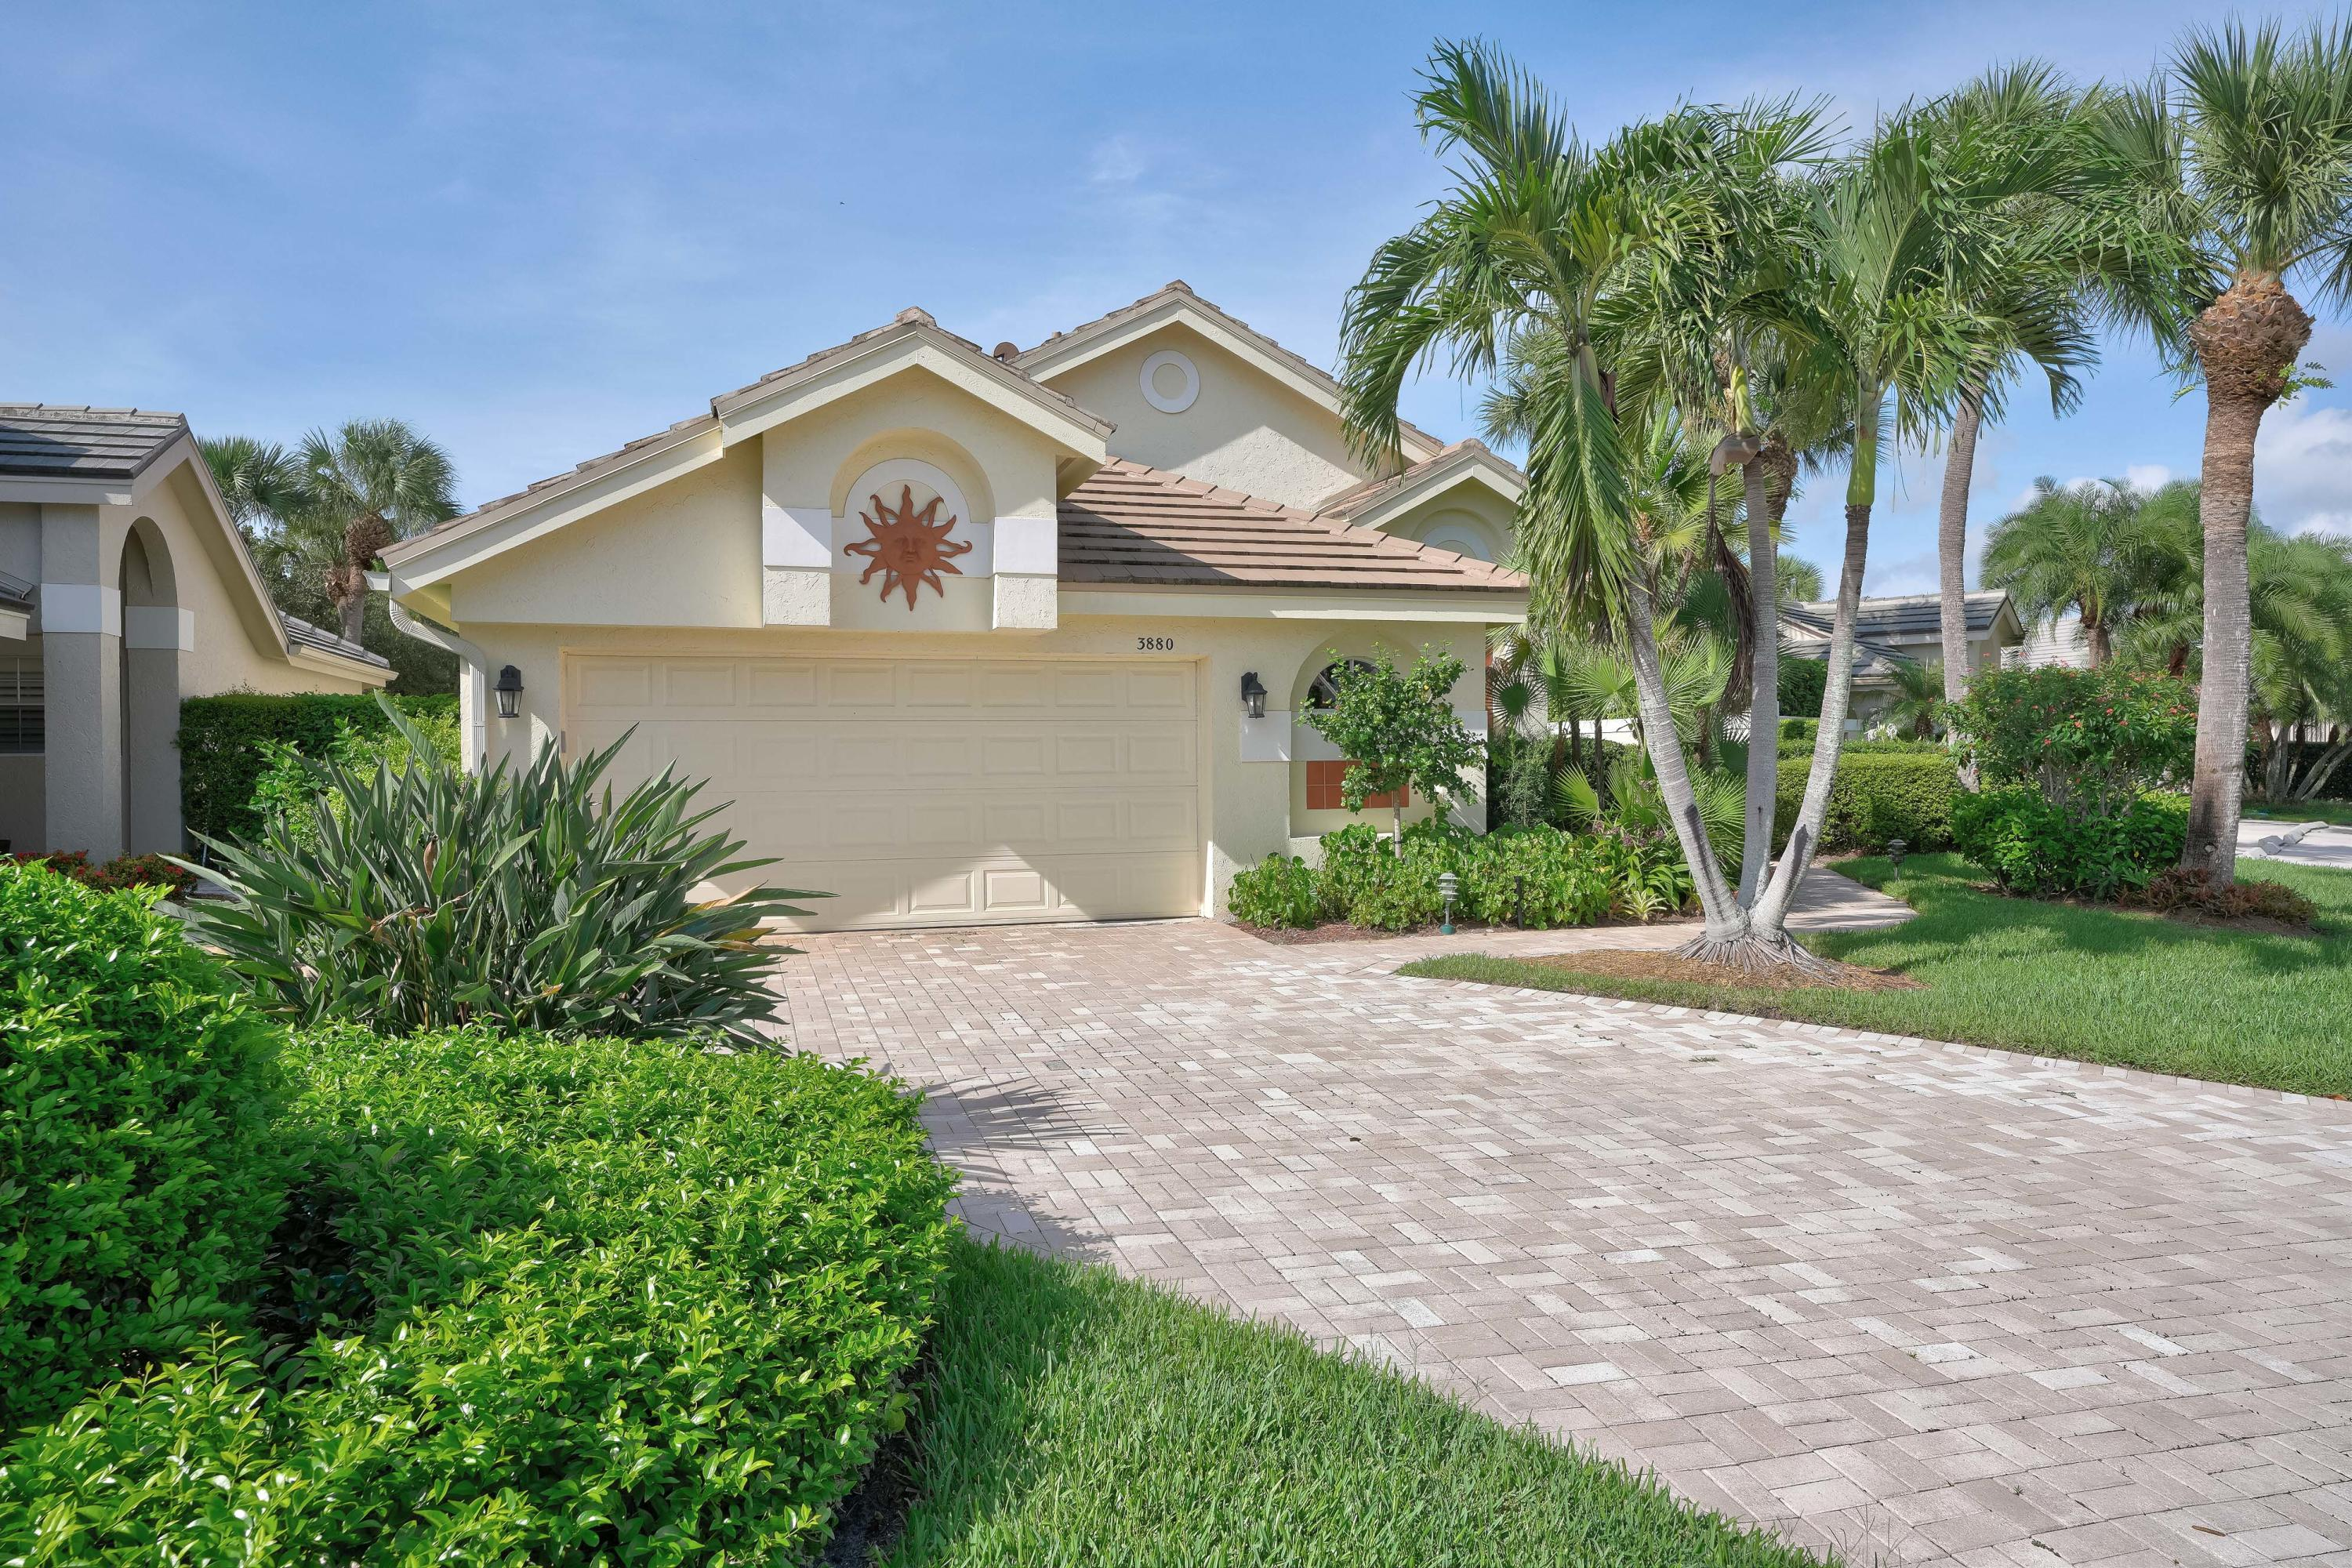 New Home for sale at 3880 Shearwater Drive in Jupiter